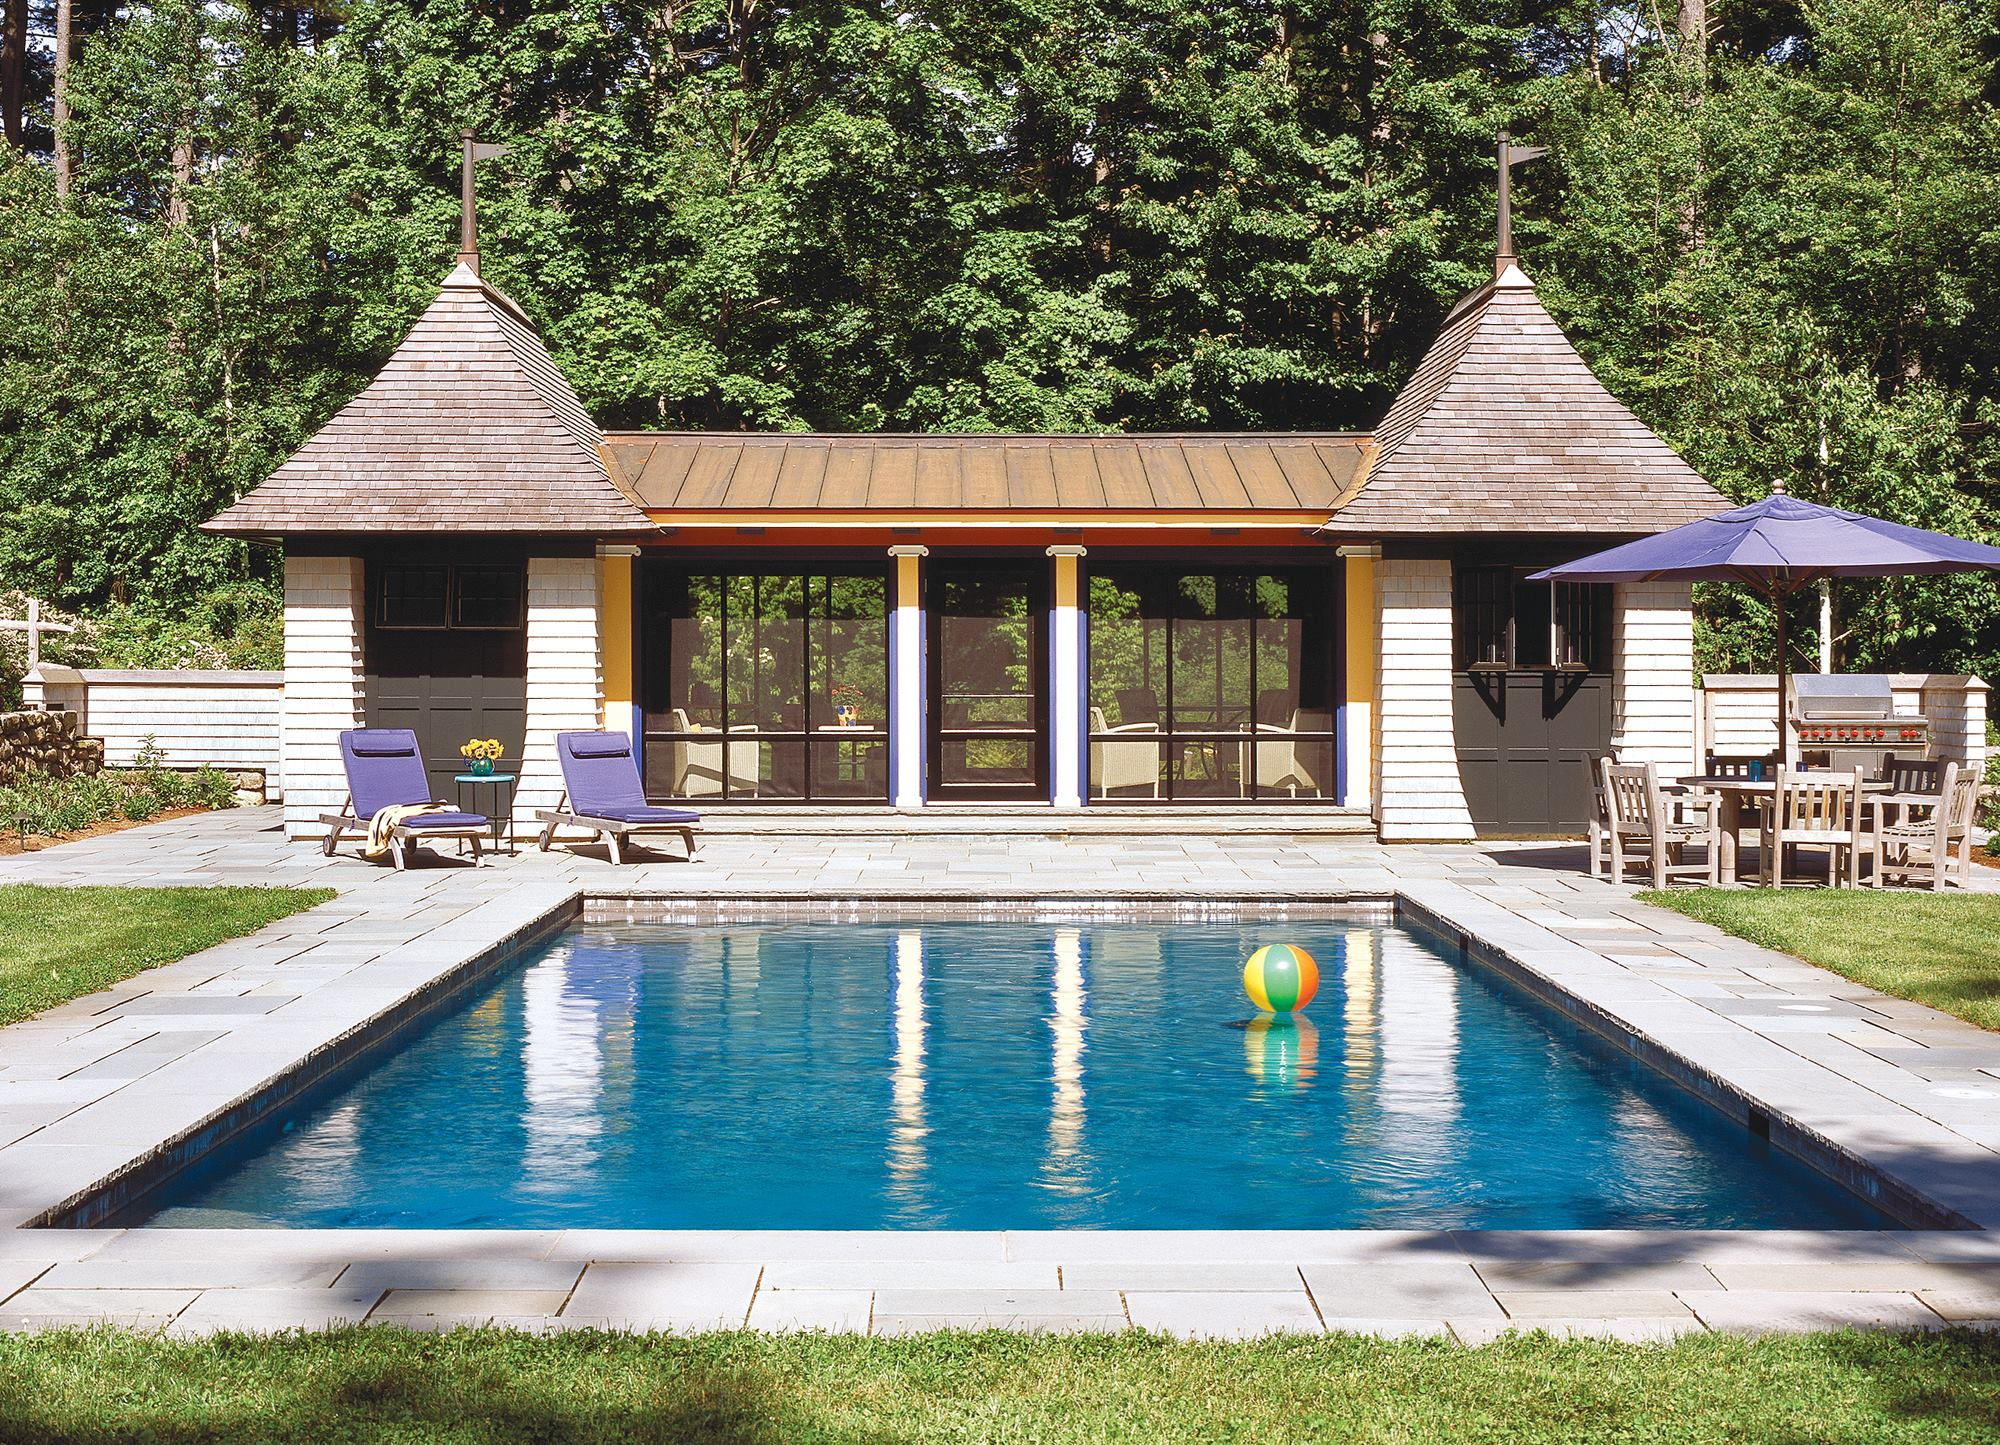 Pool houses custom home magazine design vacation for Pool house designs